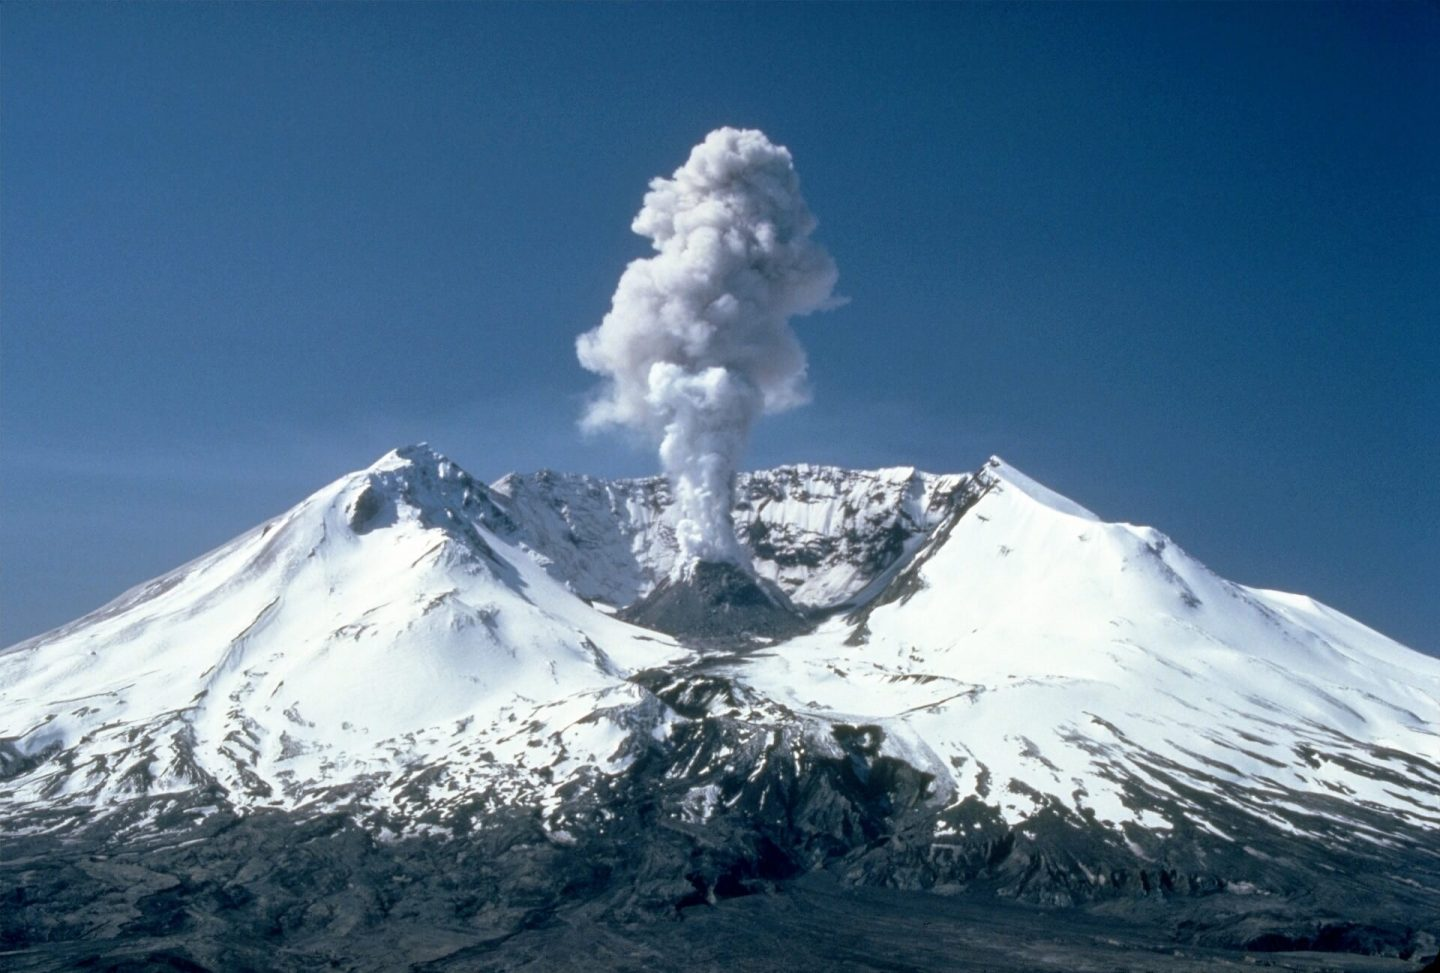 World geography questions and answers - Volcano